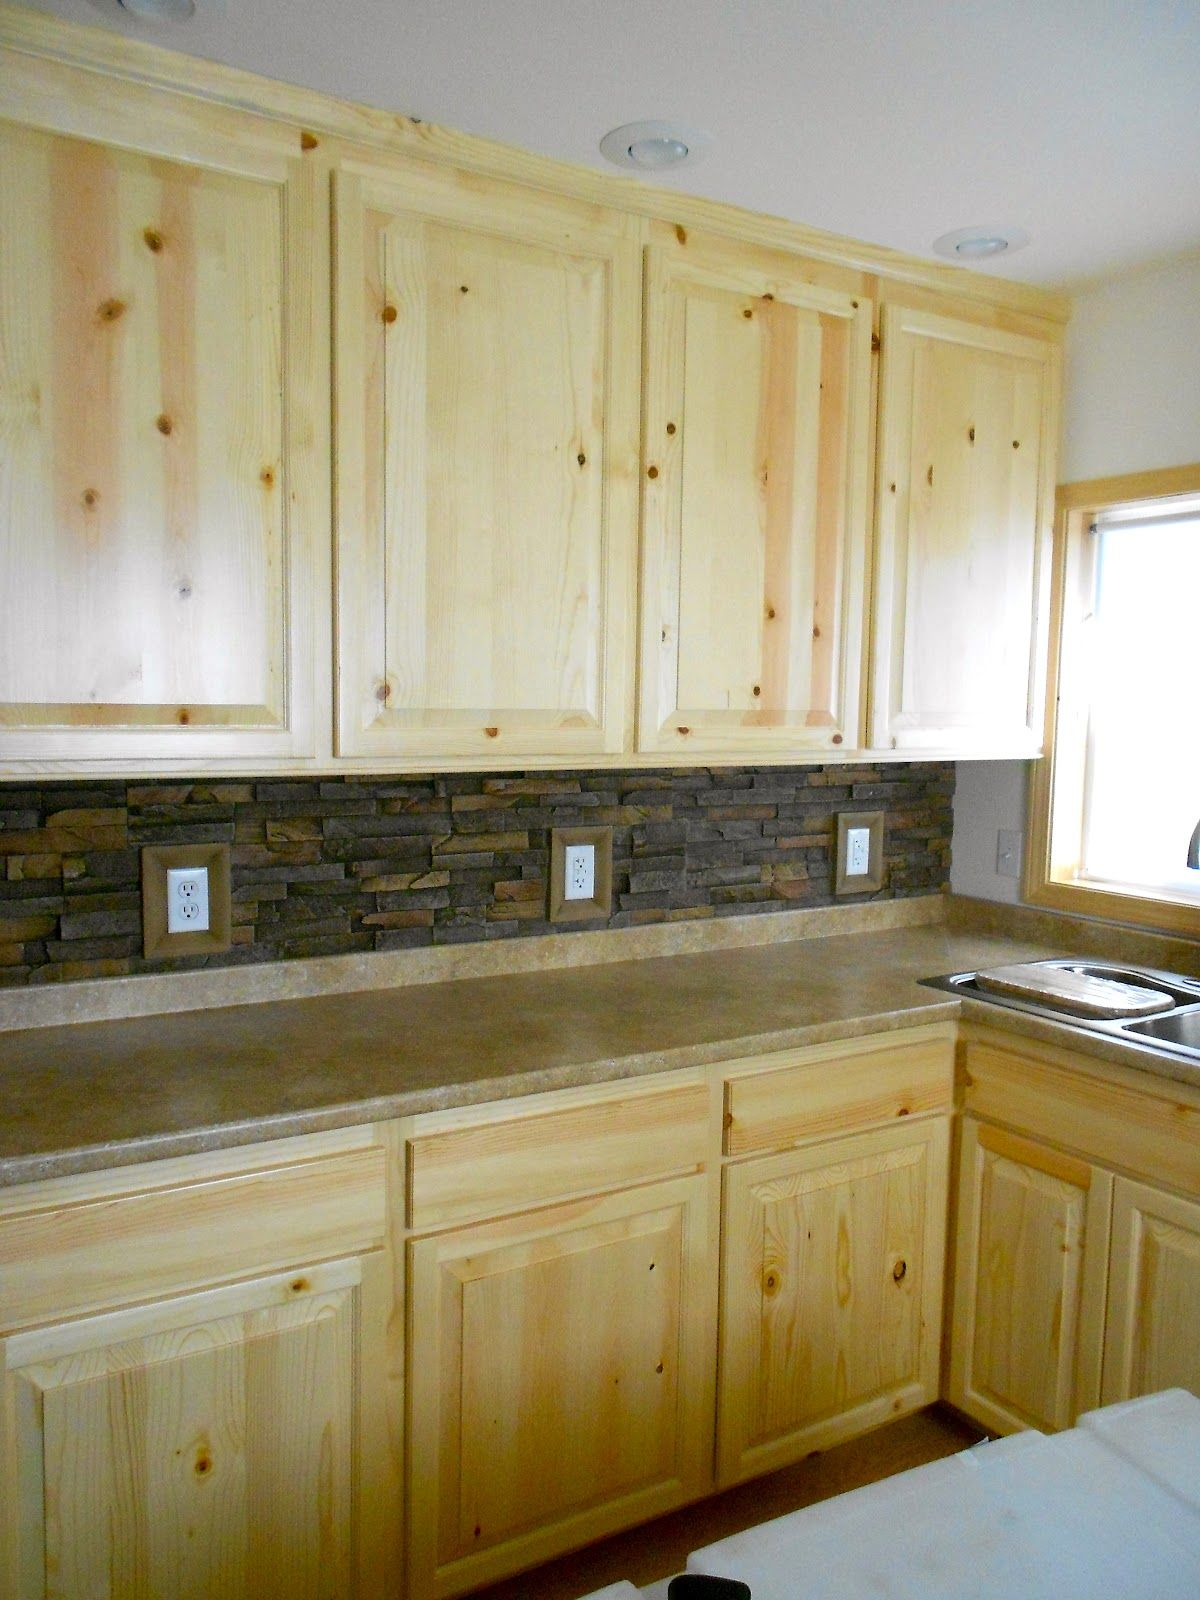 Architectural Wood Designs: Knotty Pine Cabinets | Knotty ...